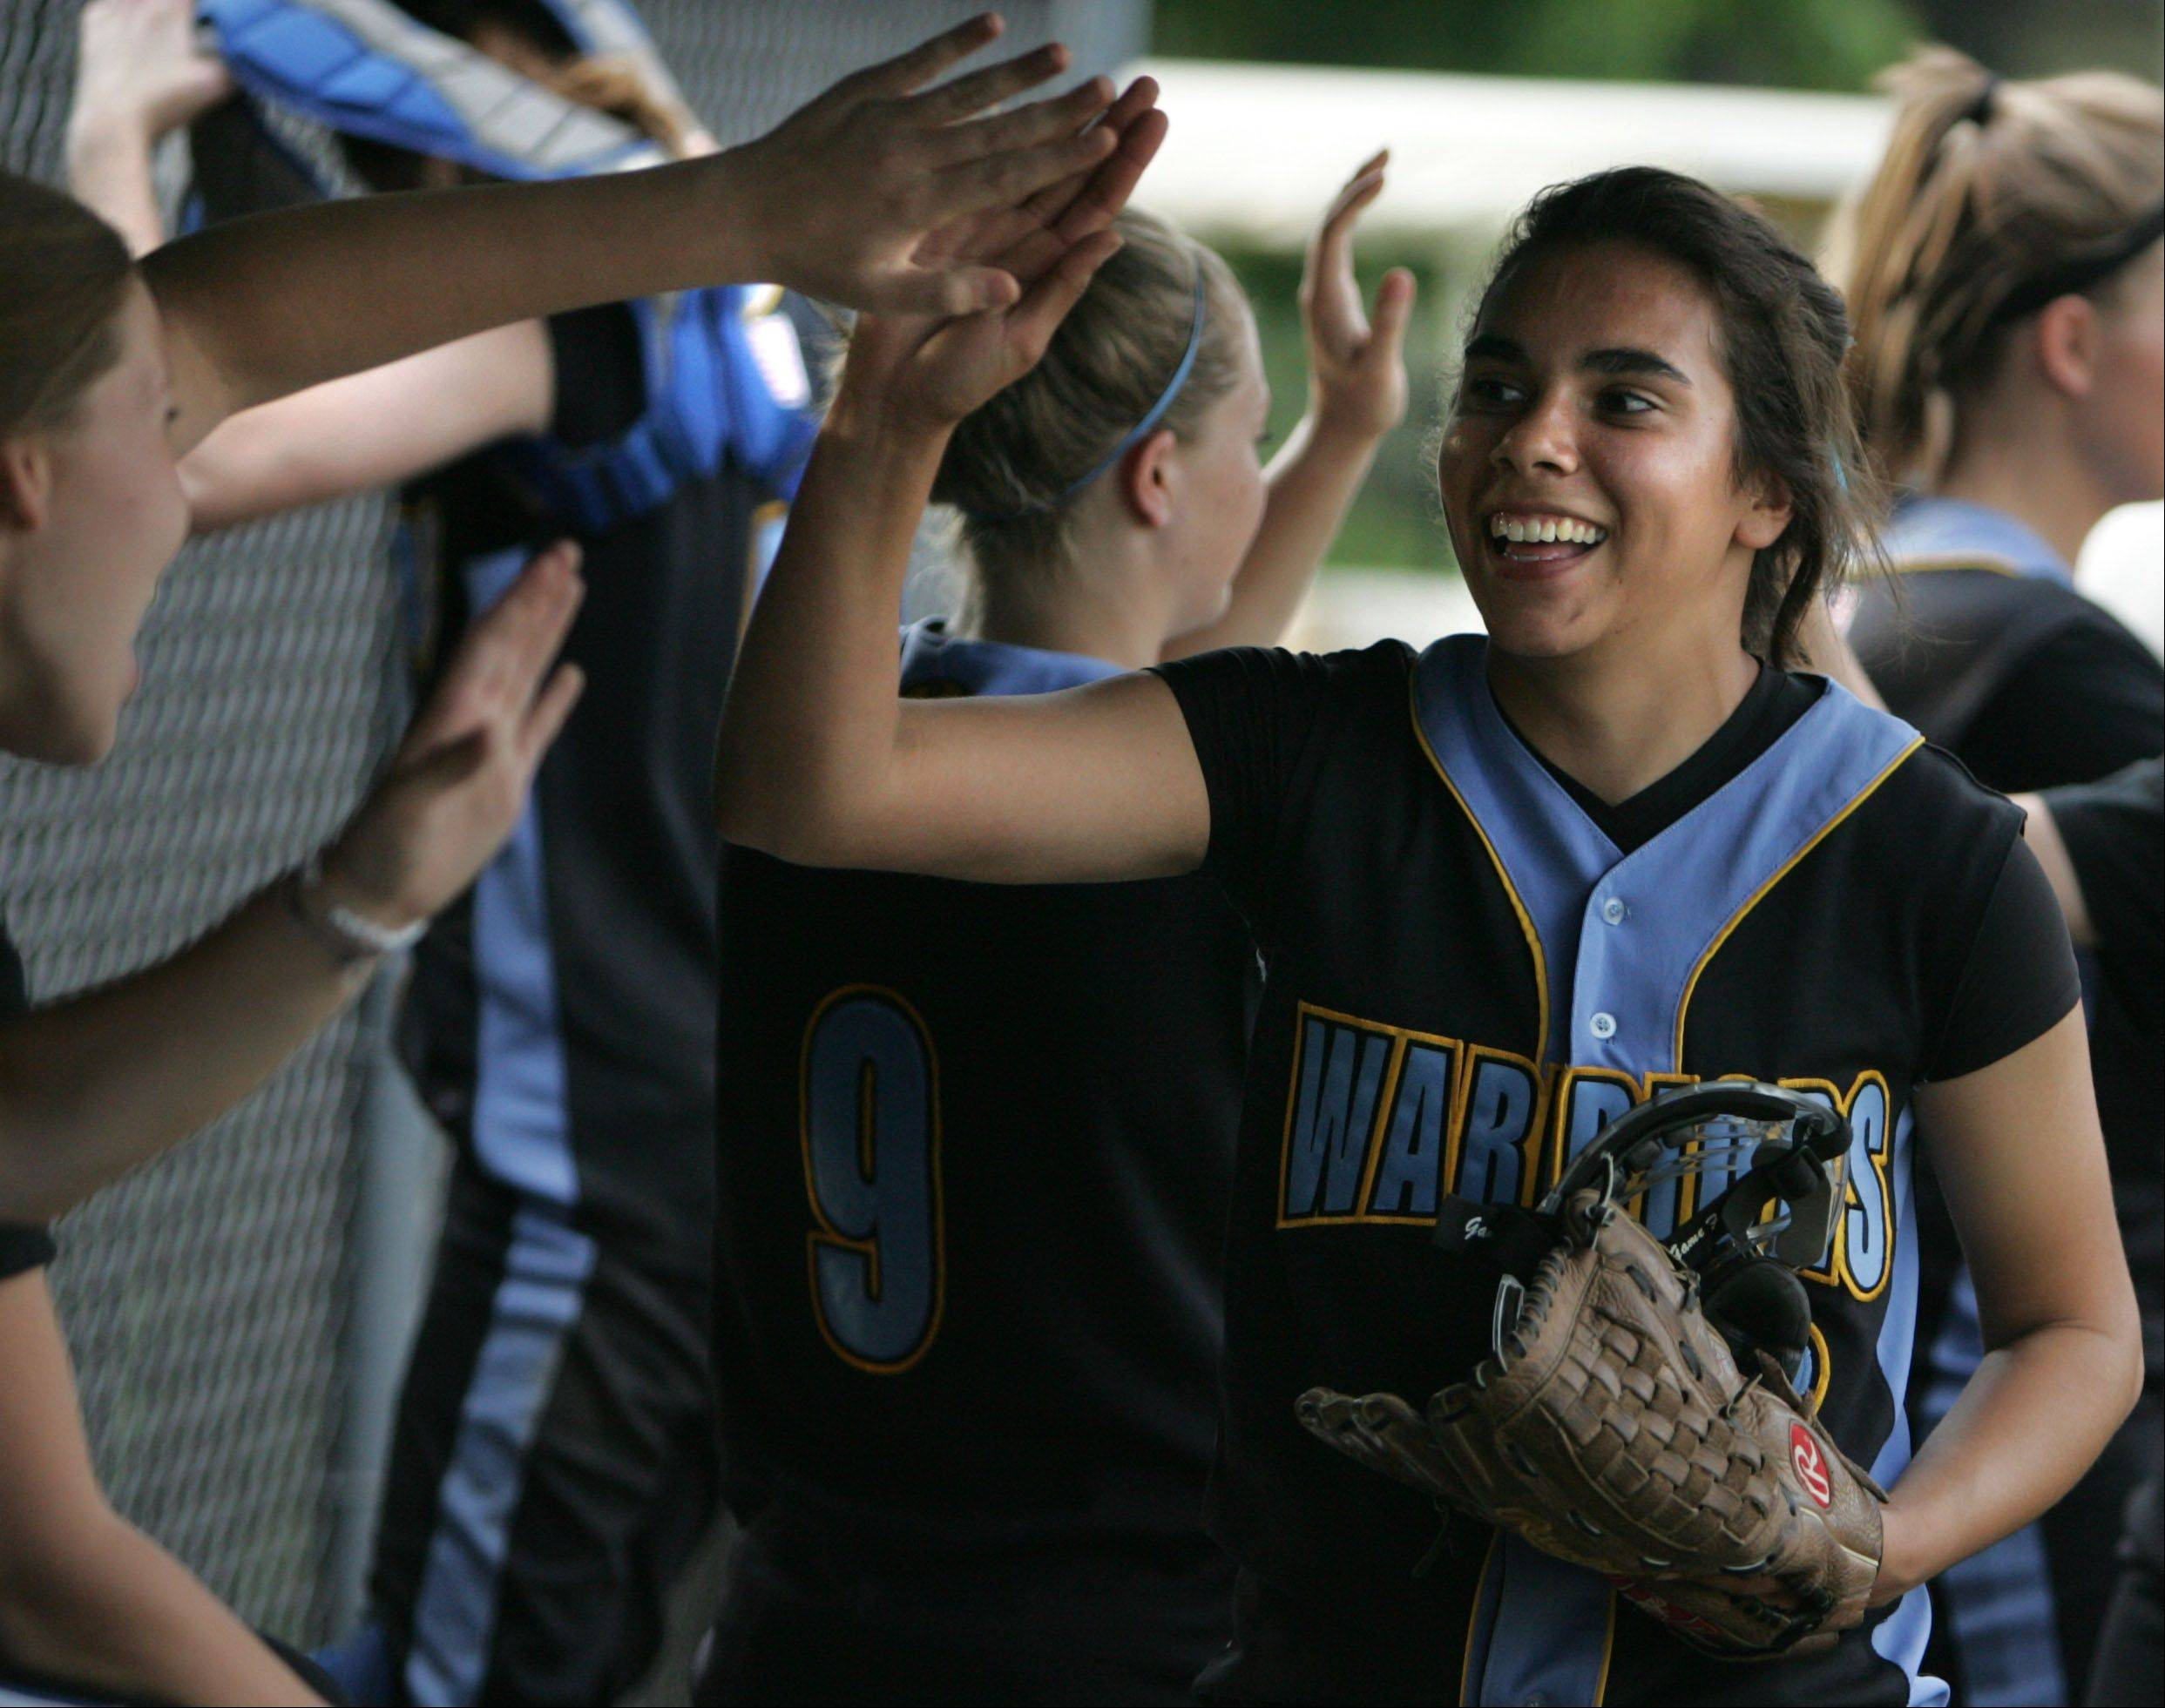 Maine West pitcher Ariel Valles is all smiles as she enters the dugout after pitching the sixth inning against Lane Tech in last season's regionals.